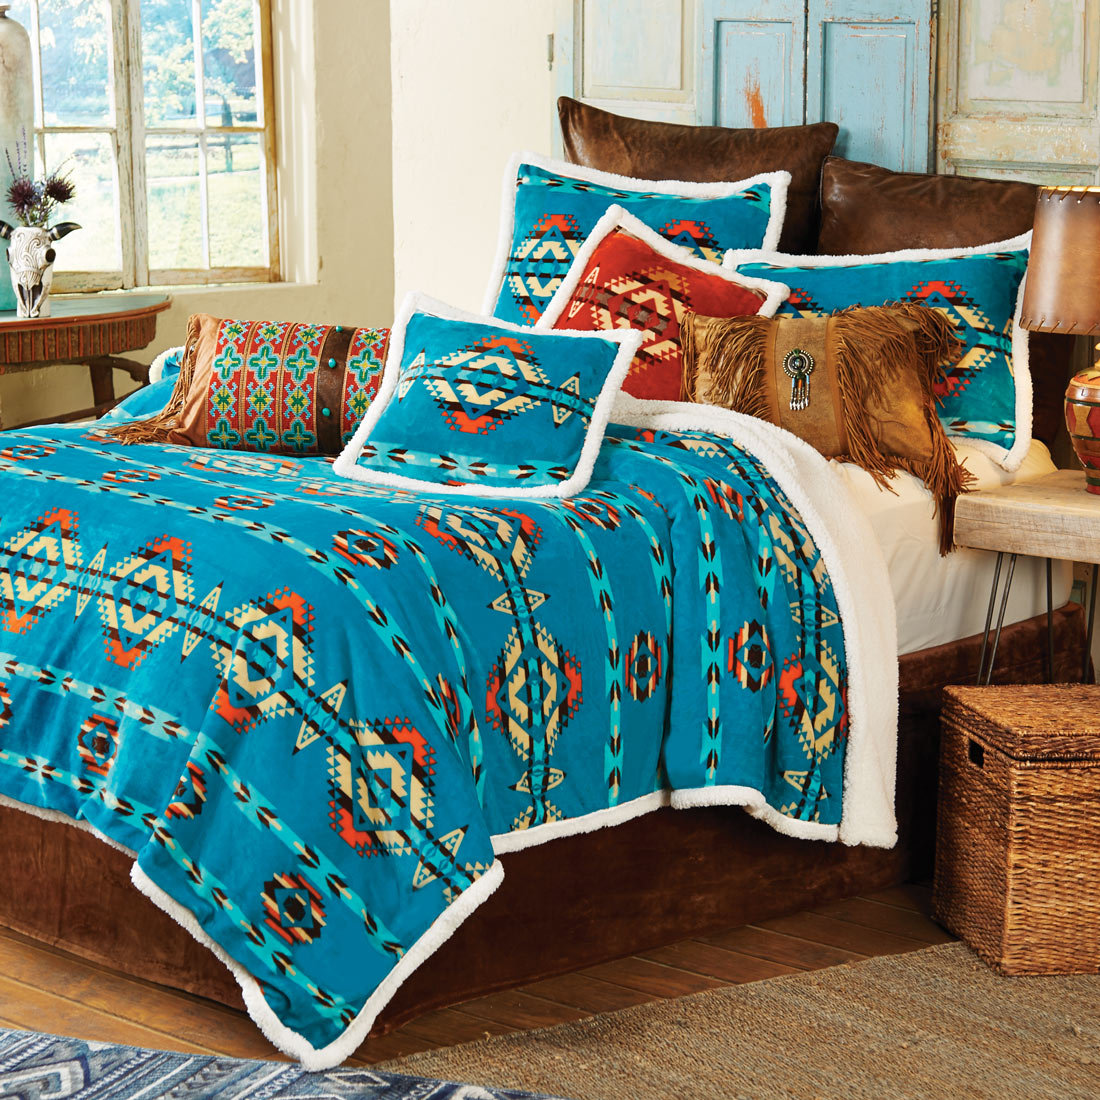 Southwestern Turquoise Plush Bed Set - Twin - CLEARANCE